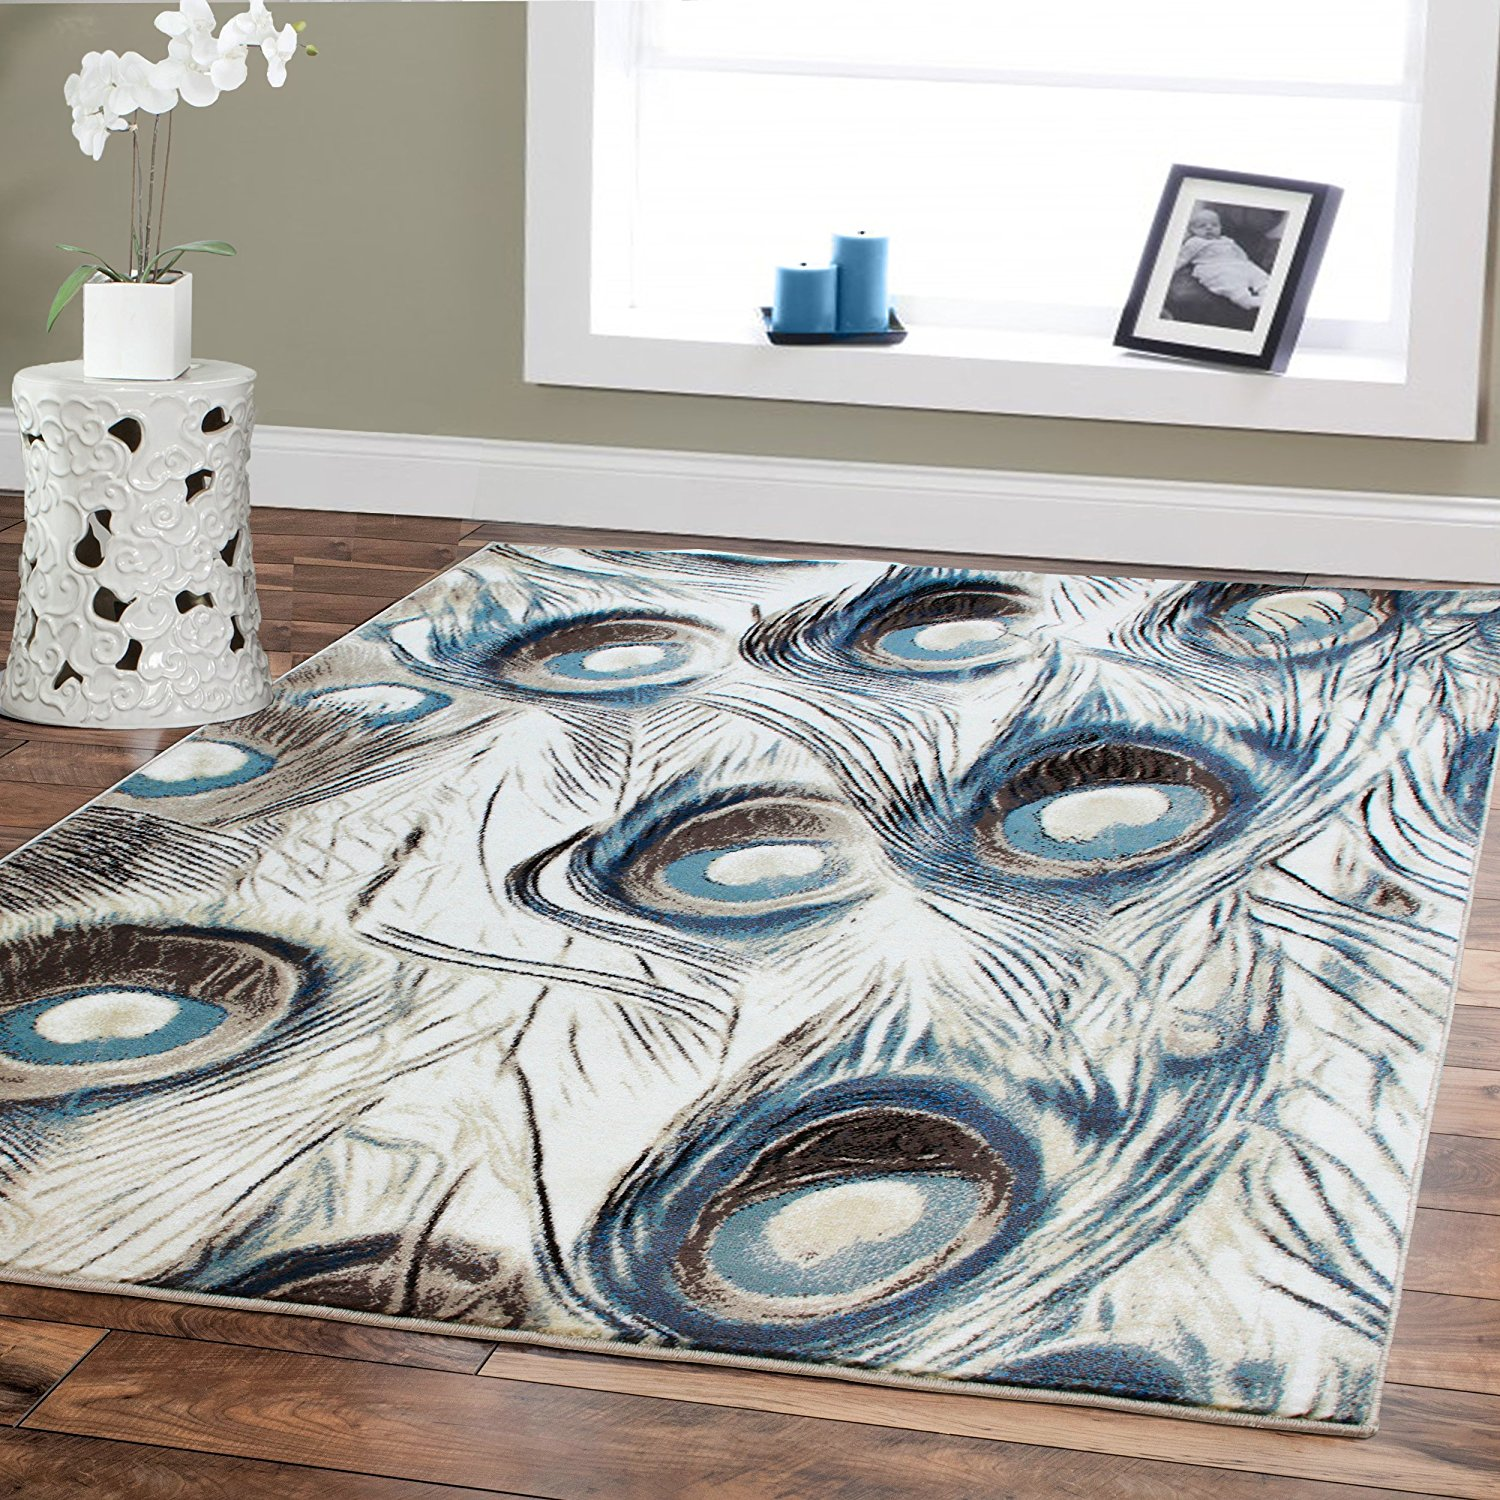 Premium Rugs Large High Quality Rugs for Living Room 8x10 Dining Room Rugs for Under the Table 8x11 Cream Blue Peacock Rugs on Clearance